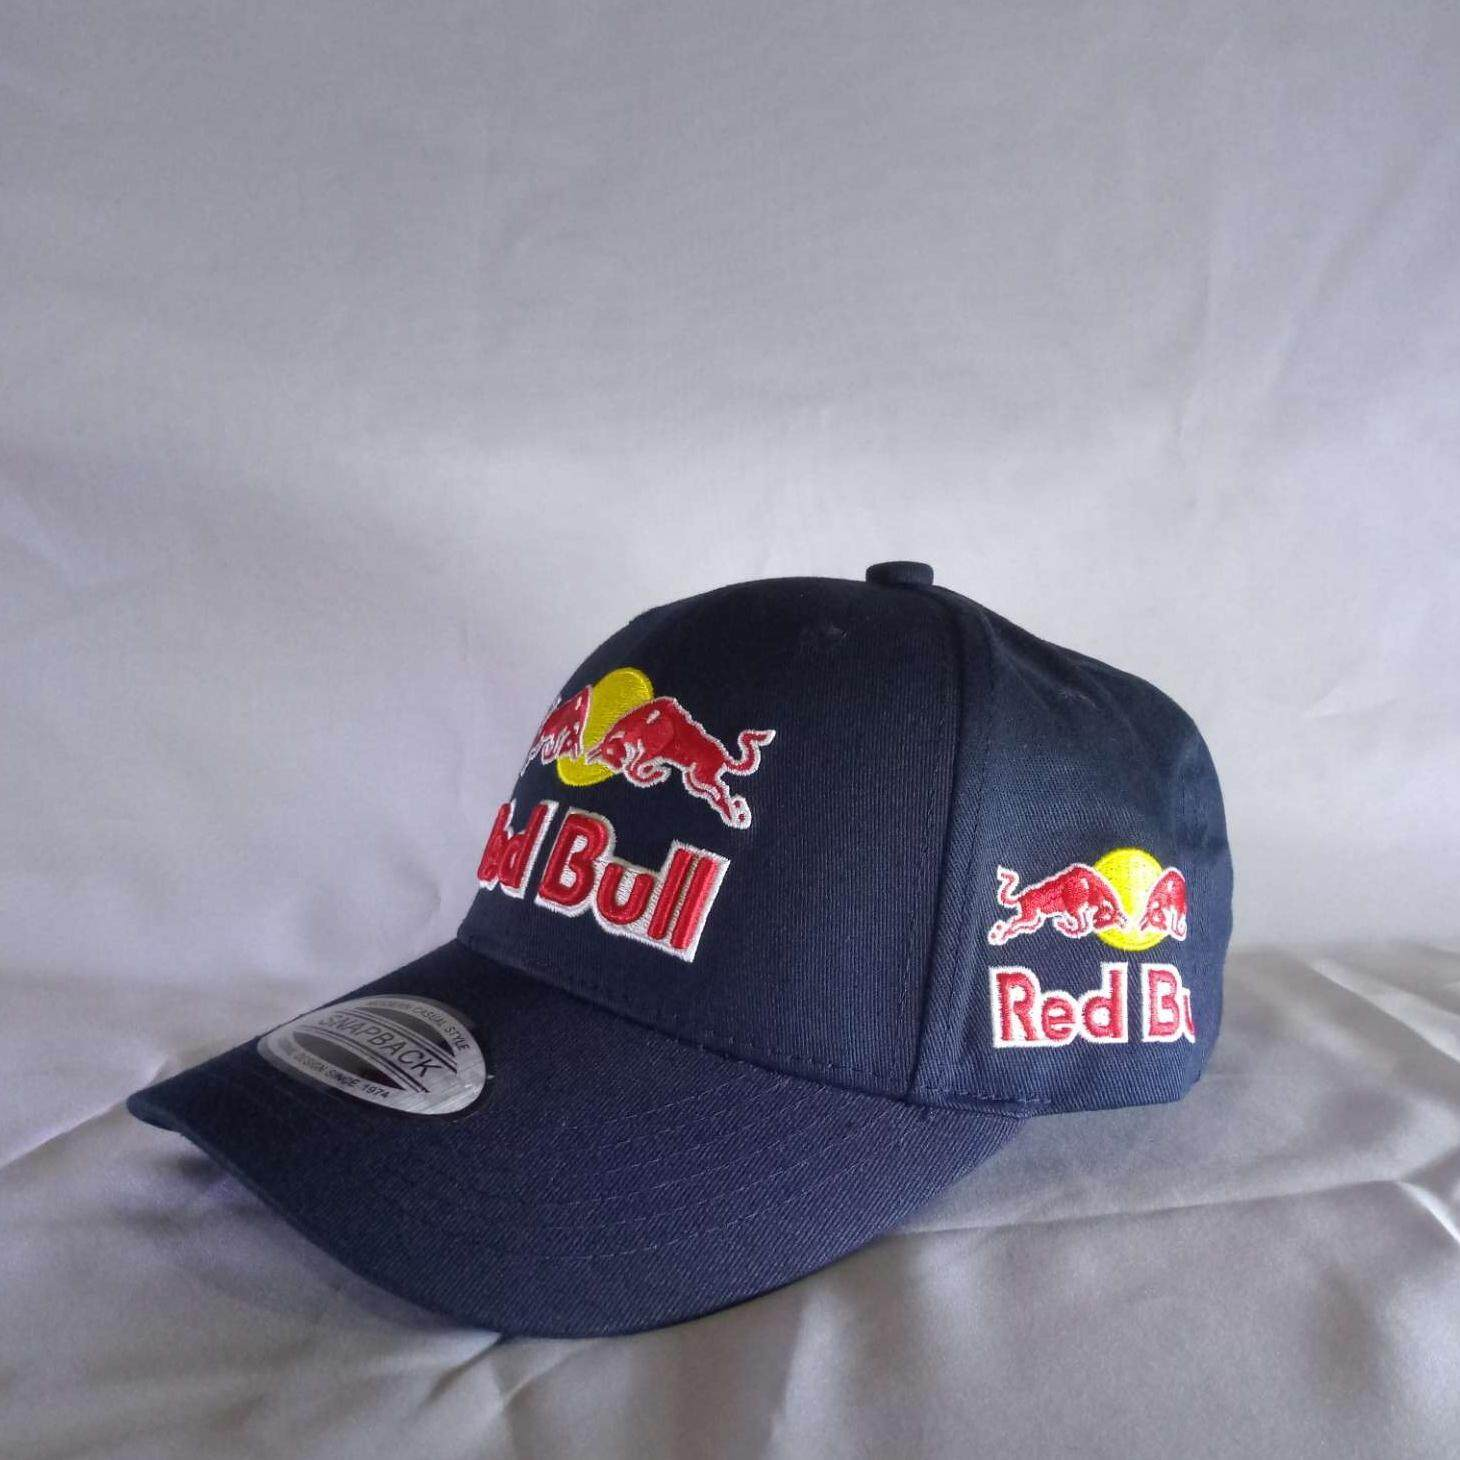 e805220f Red Bull Curved Adjustable Cap - Blue